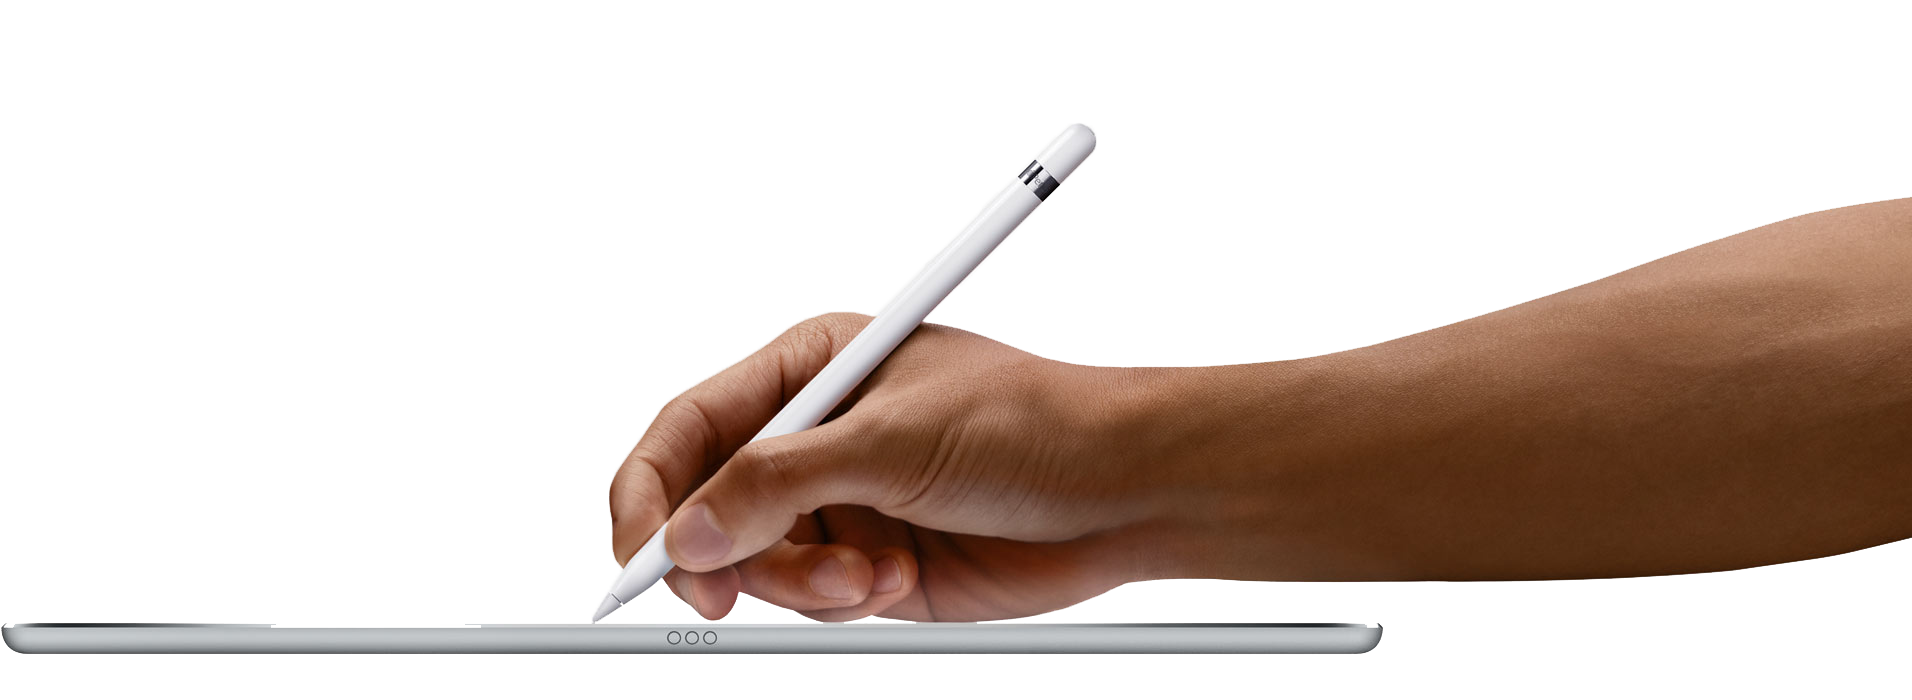 apple_pencil_large